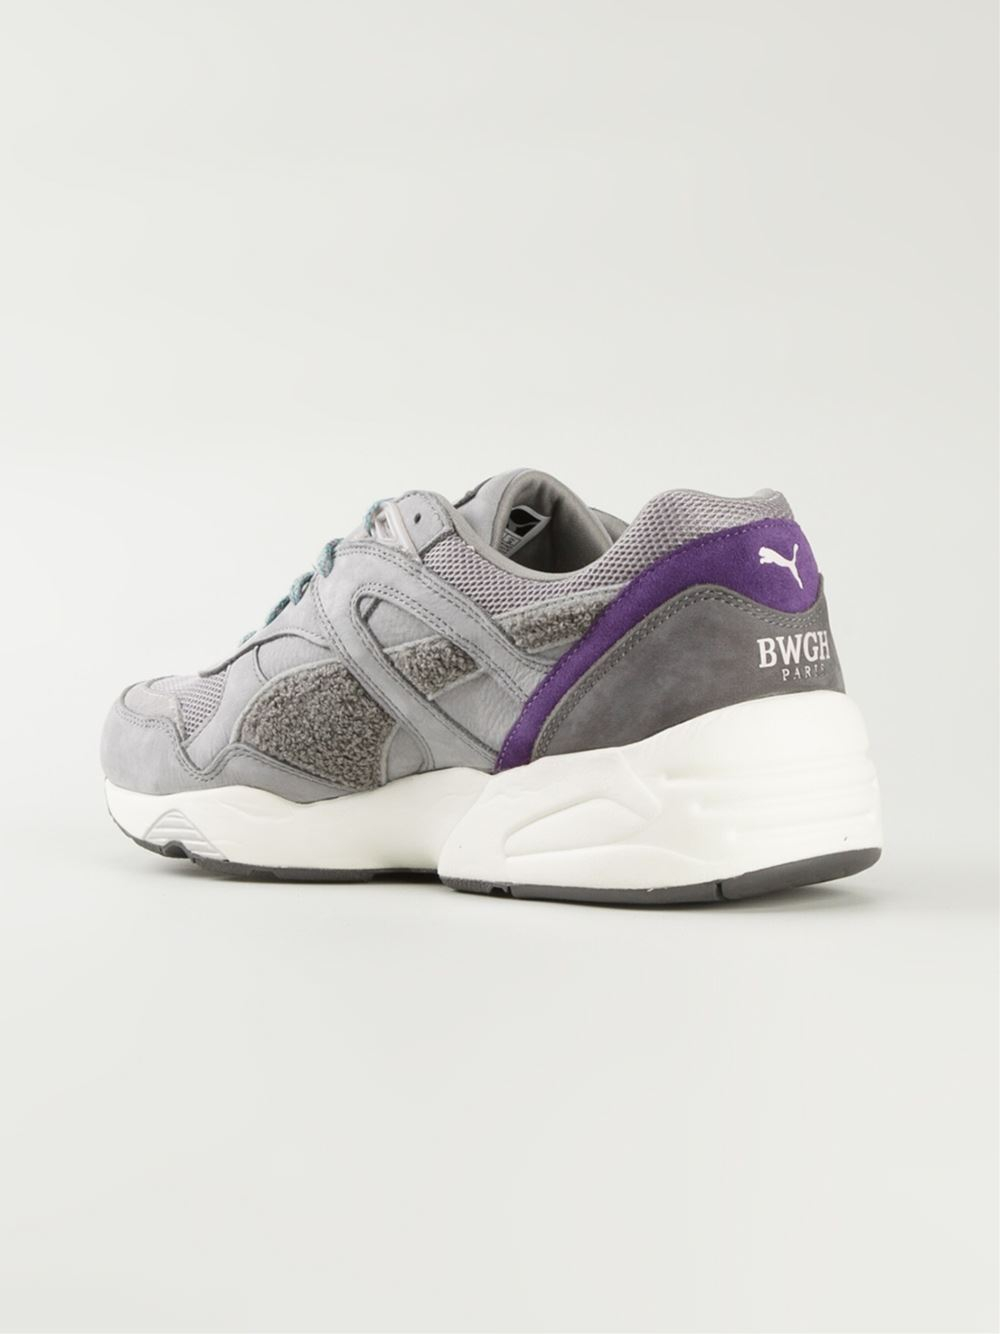 puma bwgh x 39 trinomic r698 39 sneakers in gray for men grey. Black Bedroom Furniture Sets. Home Design Ideas